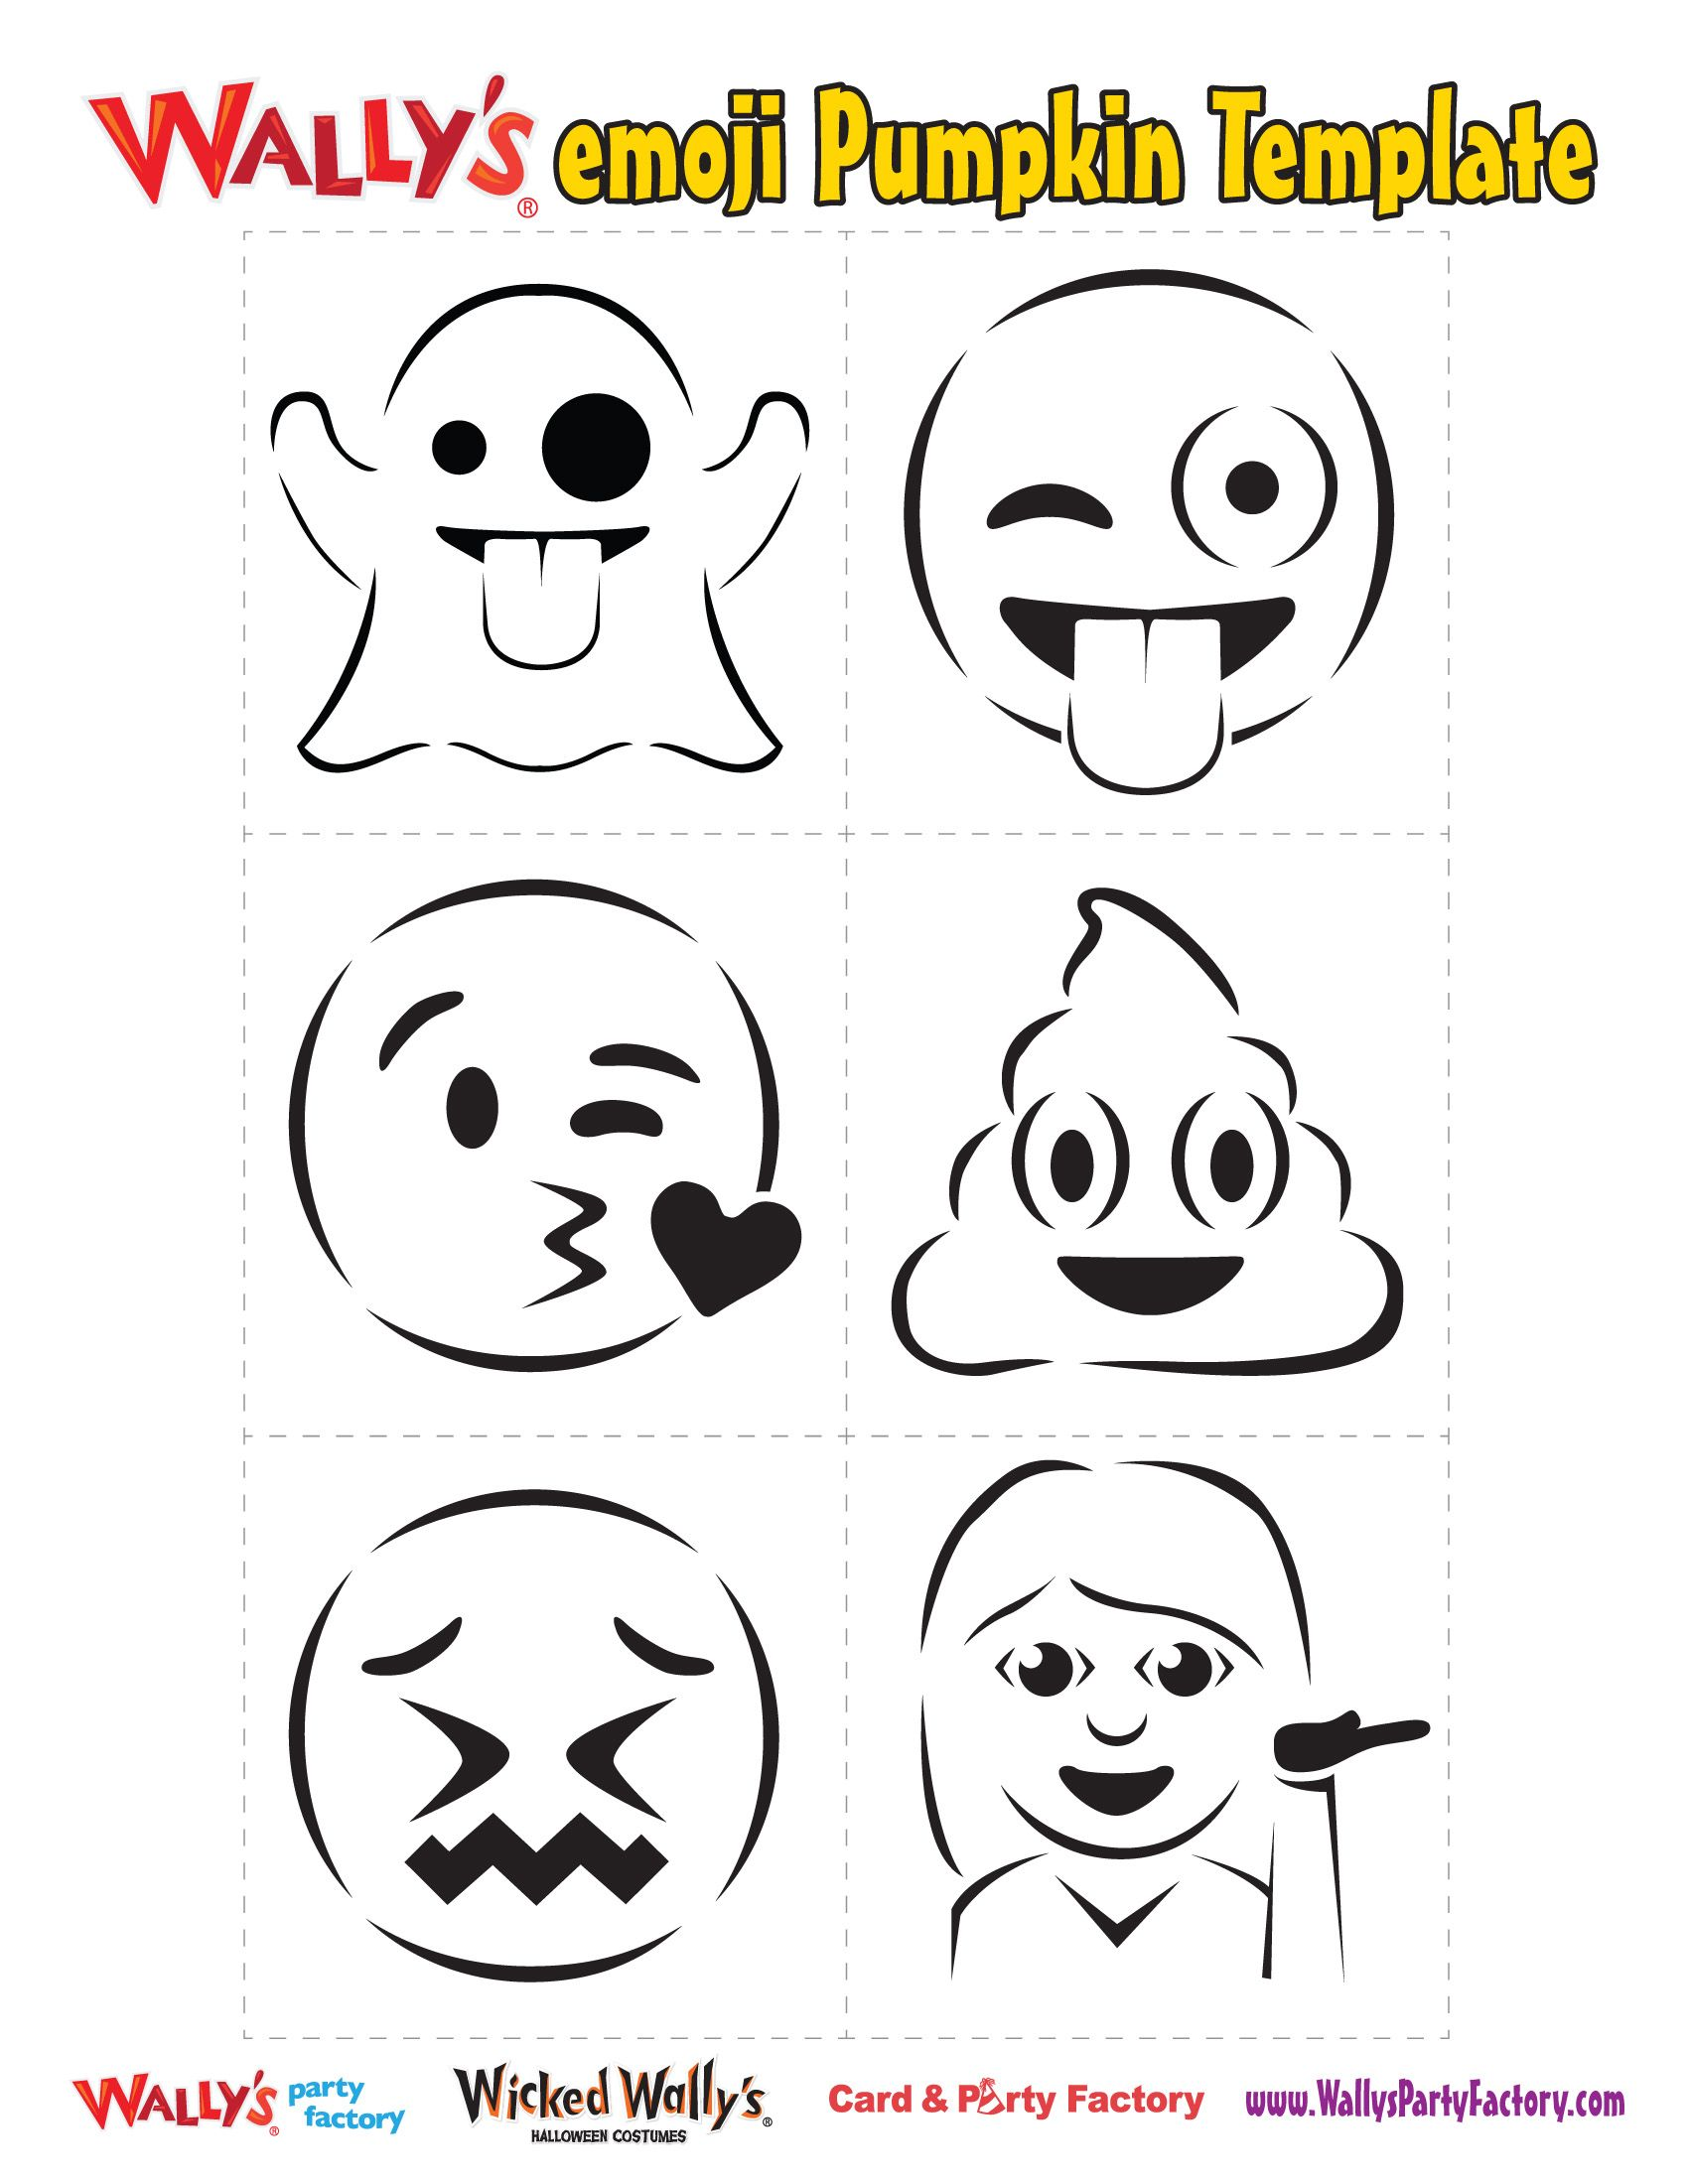 photograph relating to Emoji Template Printable known as Emoji Pumpkin Templates 🎃 Cost-free Printable emoji pumpkins